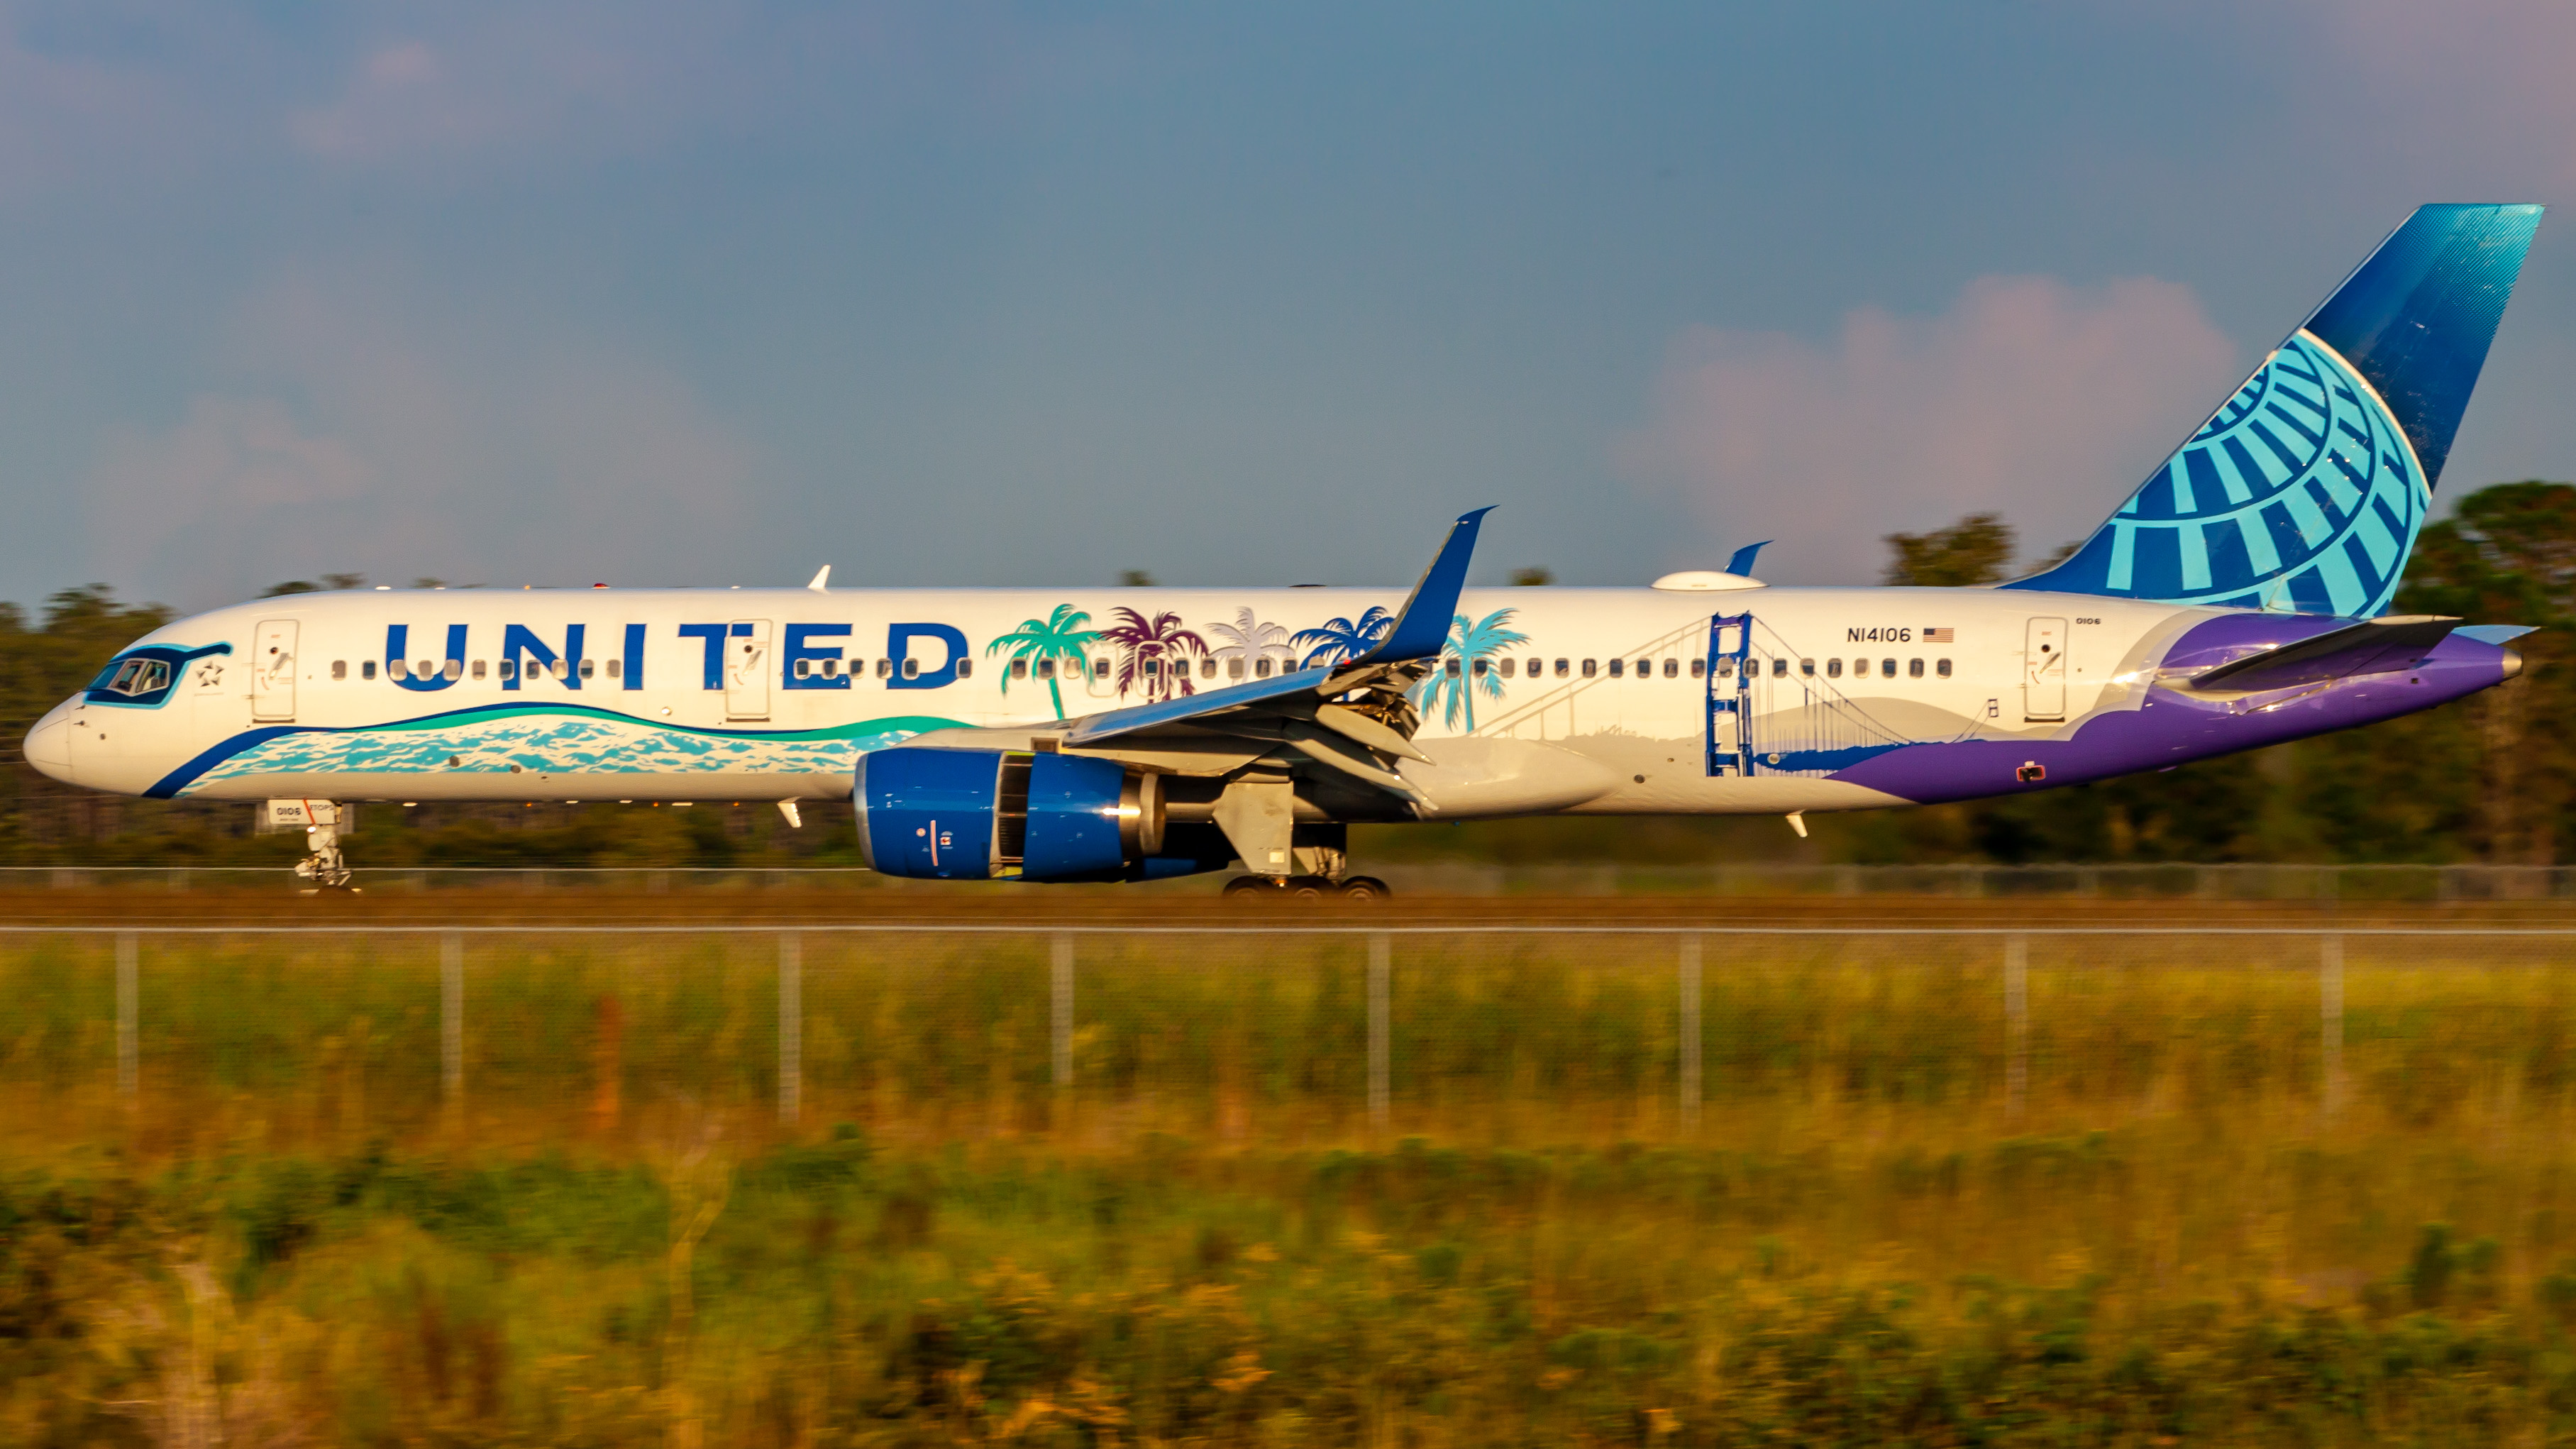 Photo of N14106 - United Airlines Boeing 757-200 at MCO